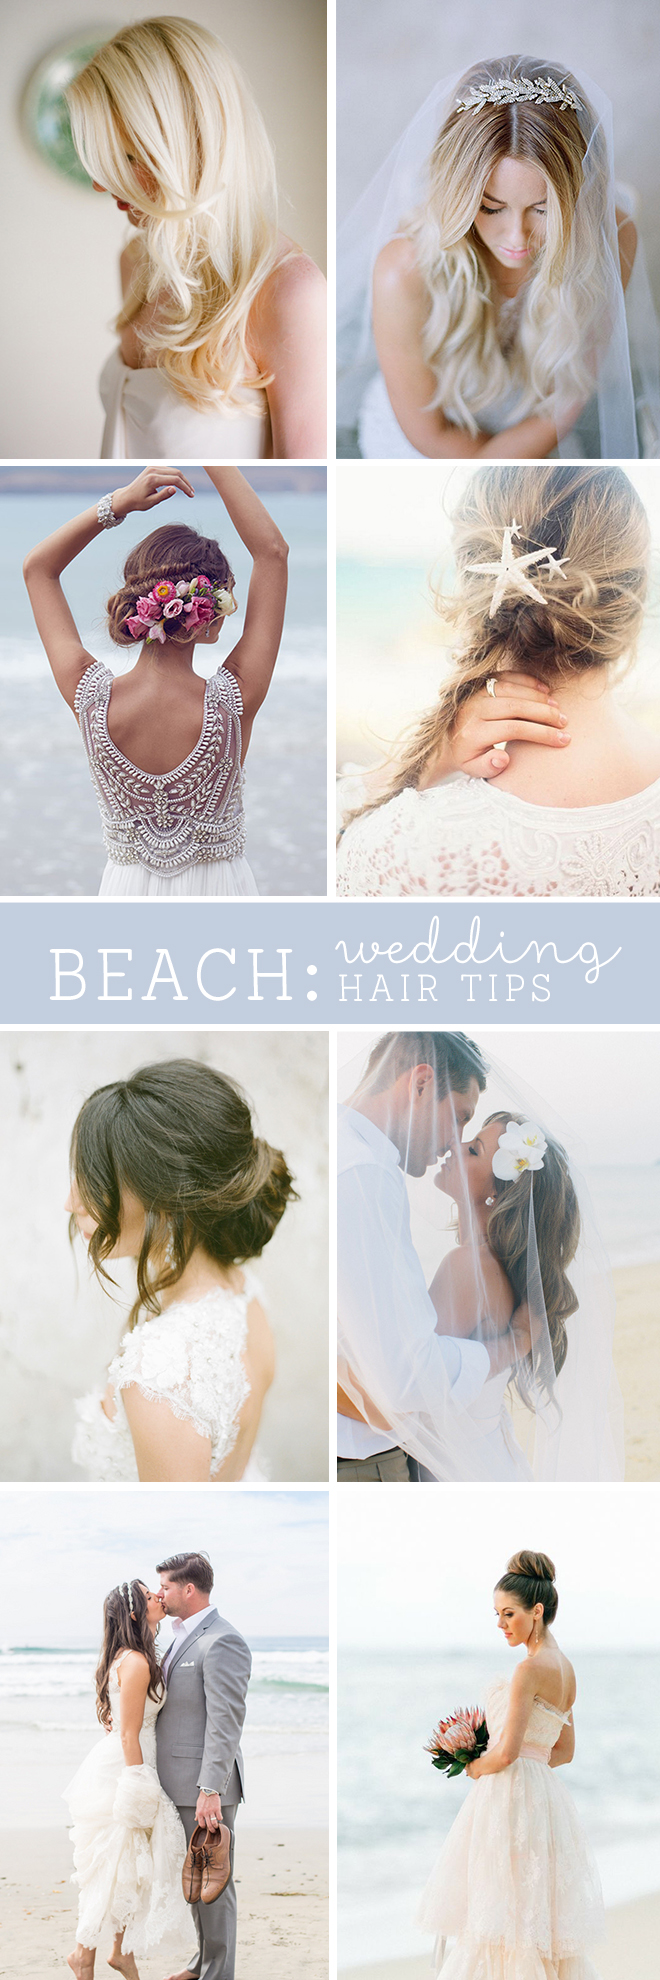 The best beach wedding hair tips awesome tips for beach wedding hair must read junglespirit Image collections